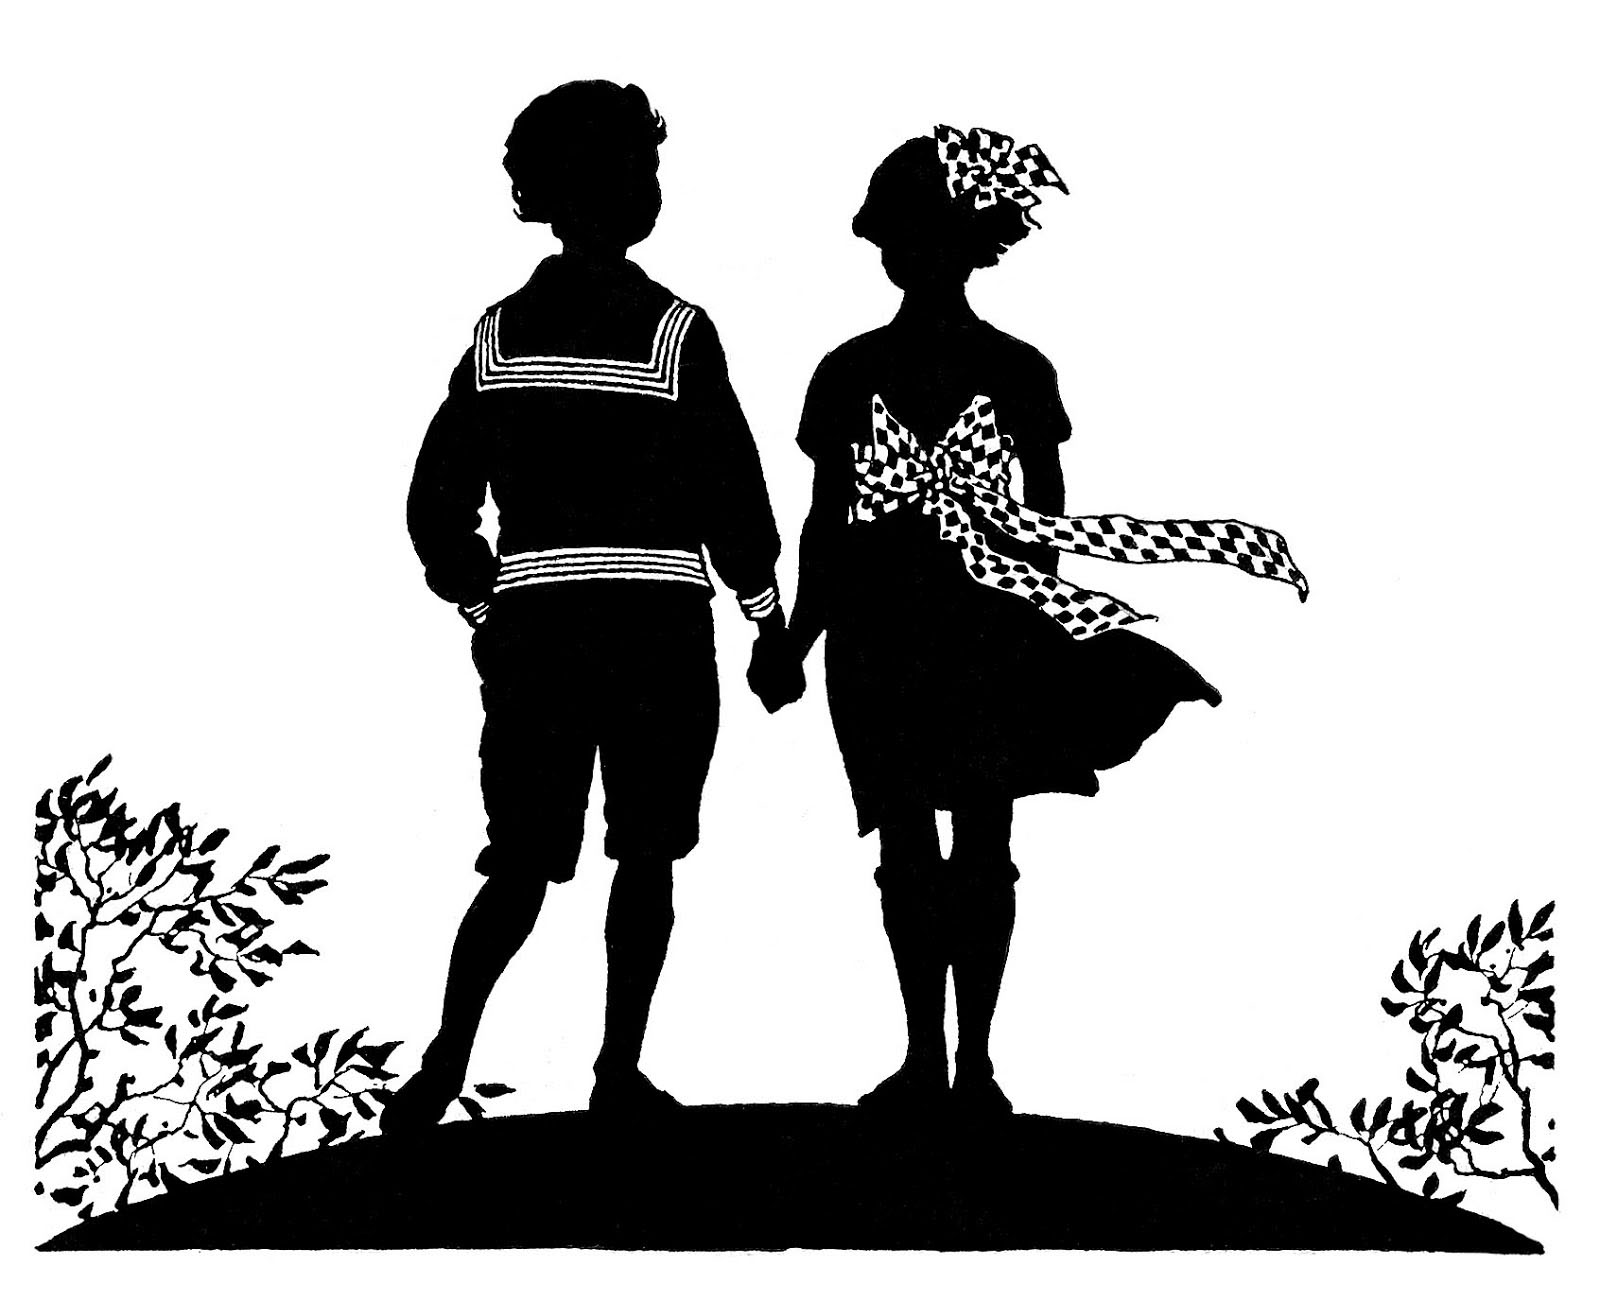 Patriotic Silhouette Boy and Girl Holding Hands